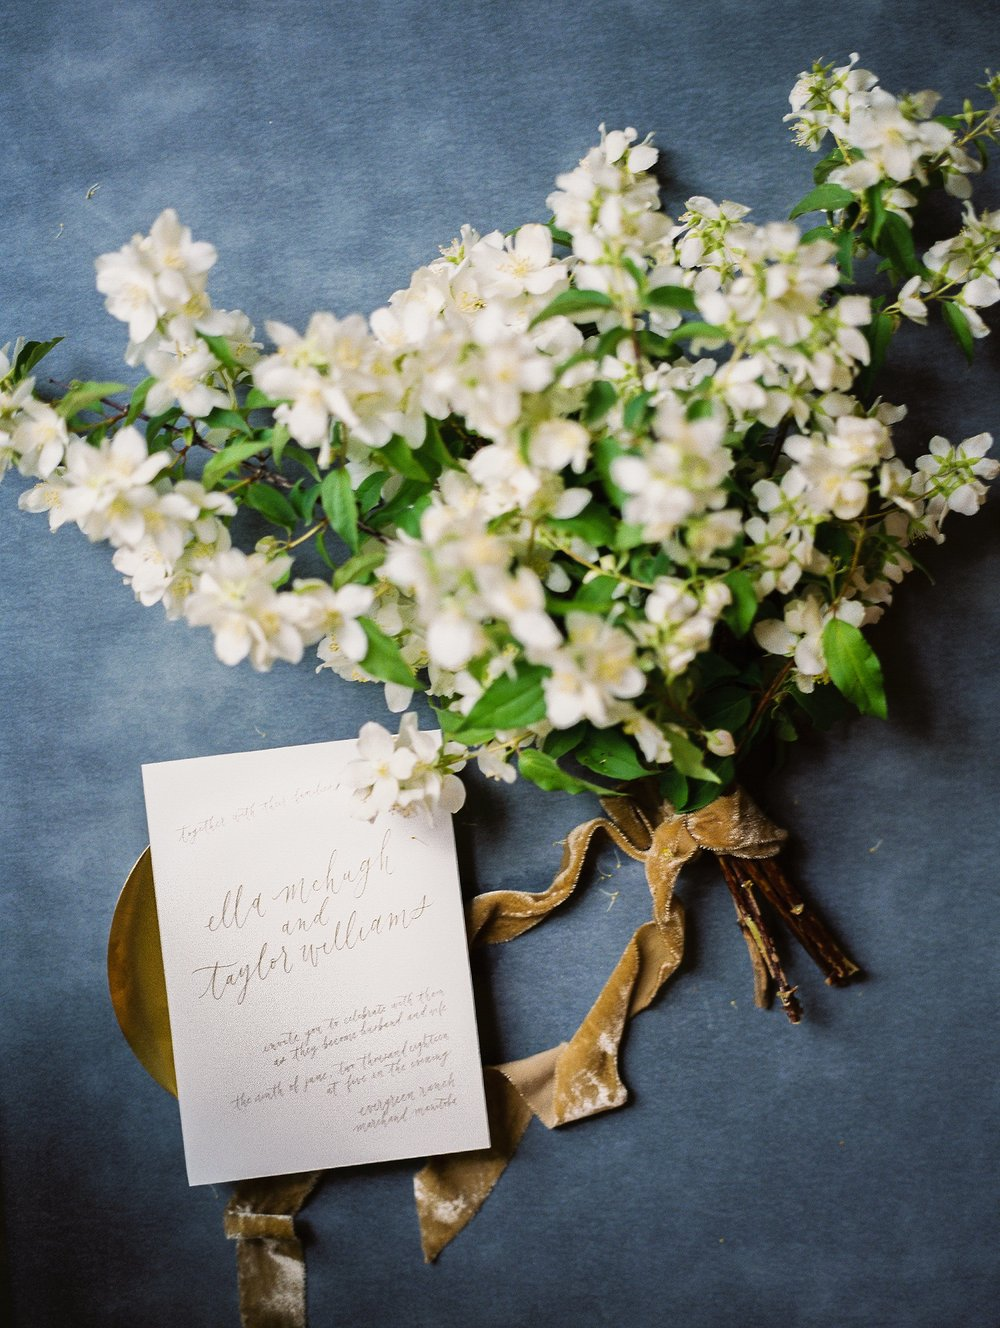 Floral bouquet by Heather Page and Calligraphy by Jennifer Bianca Calligraphy | wedding day detail photo | Toronto Wedding Photographer Keila Marie Photography